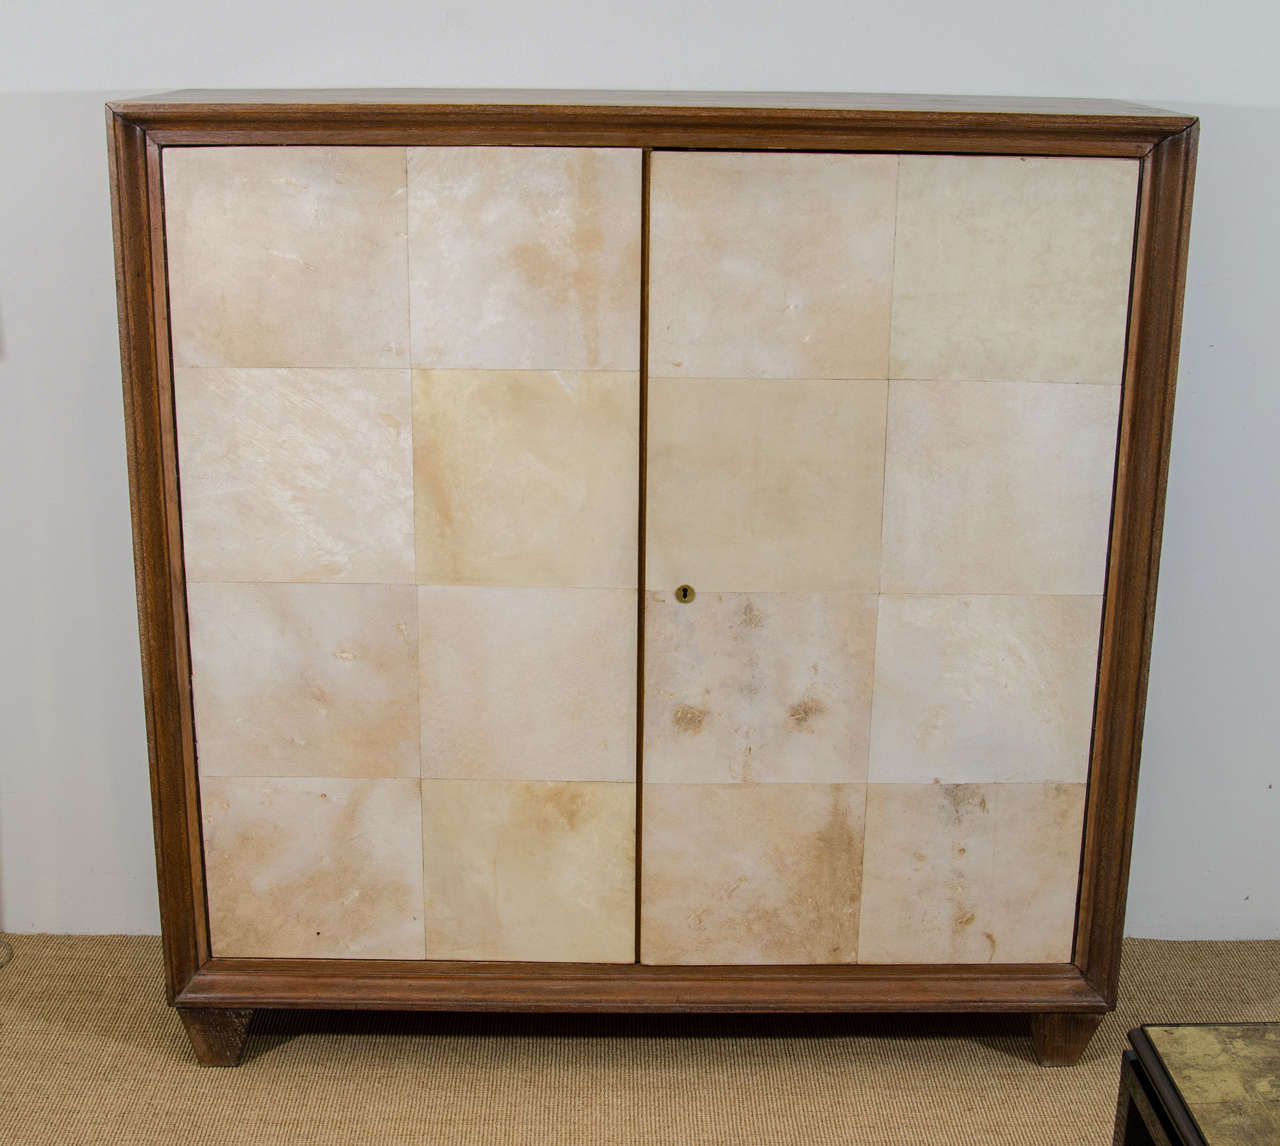 Cerused French Oak Kitchens And Cabinets: French Parchment And Cerused Oak Cabinet, Circa 1940s For